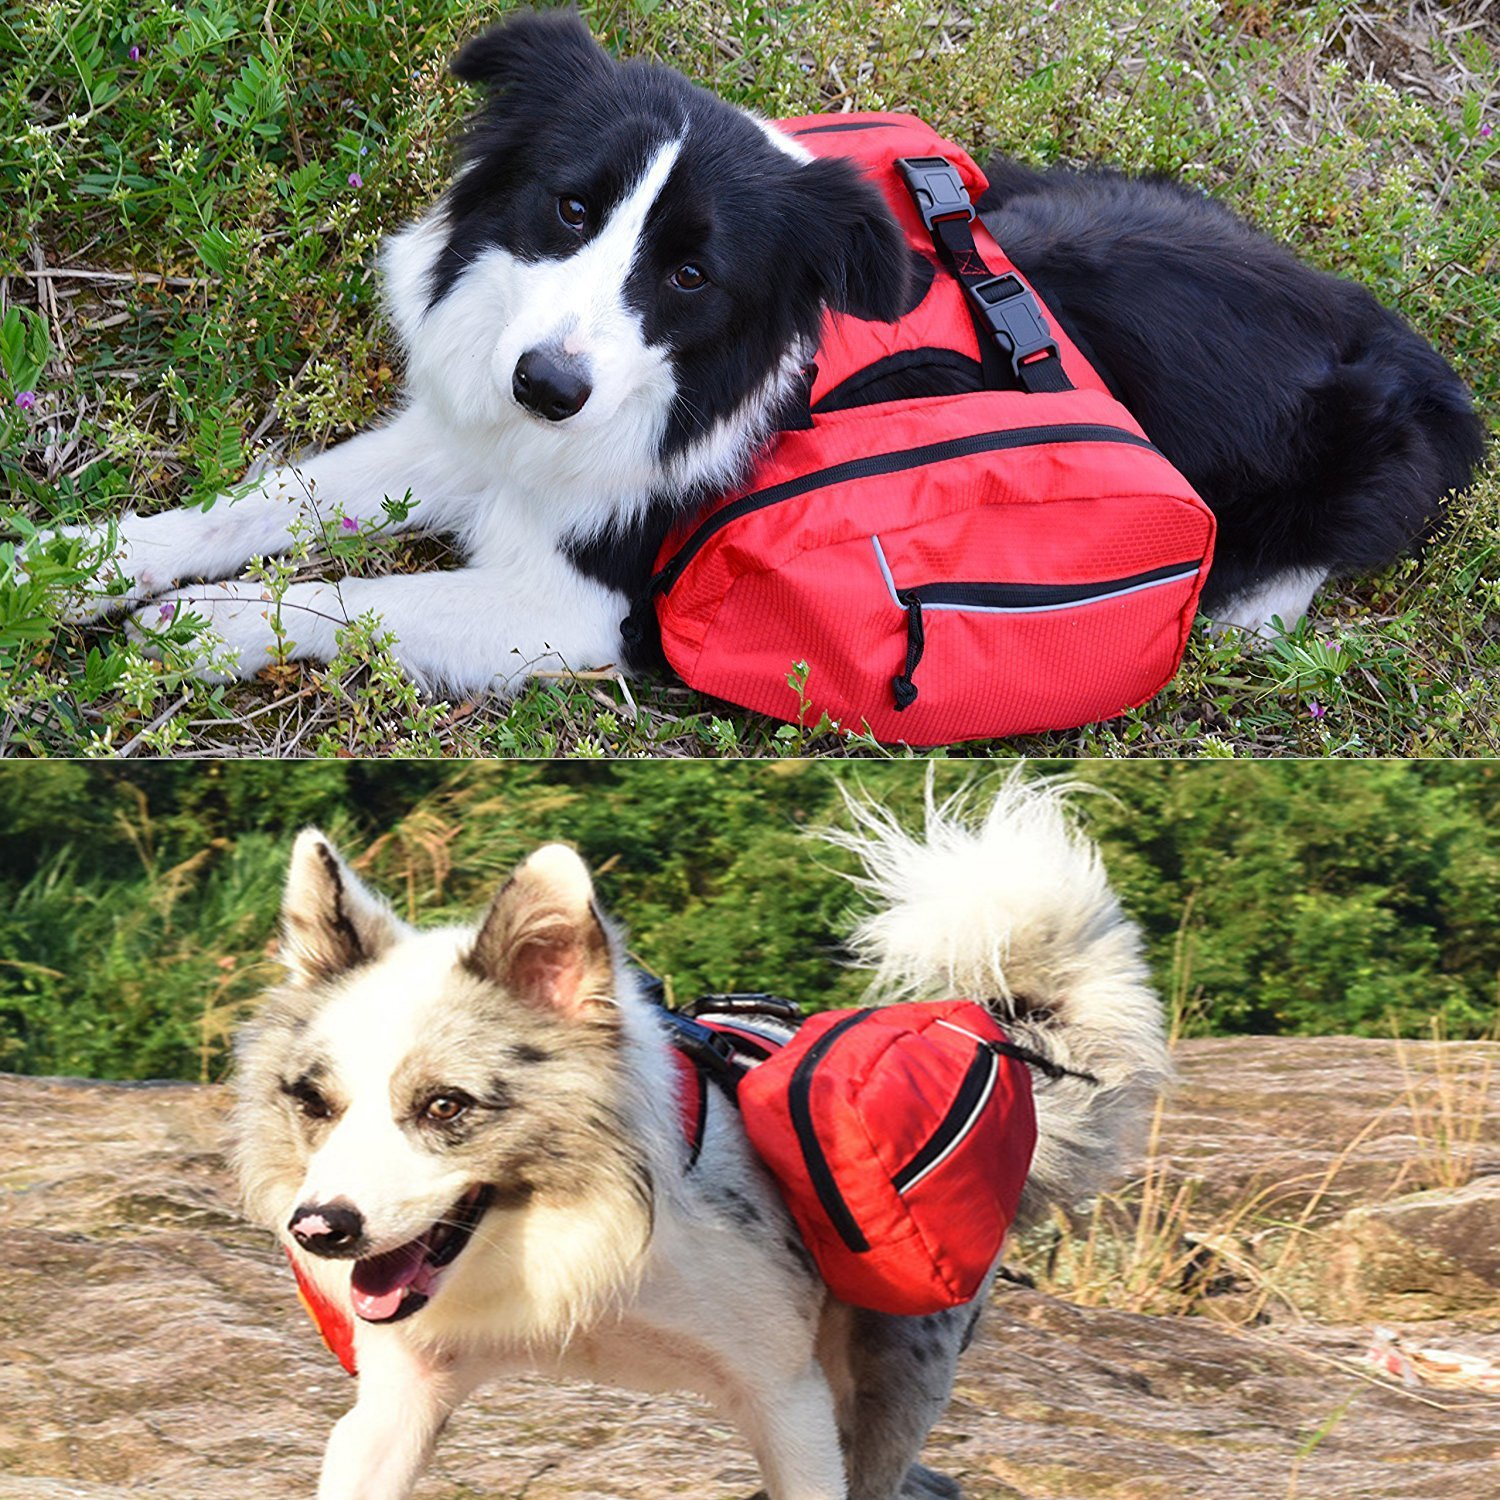 ASOCEA Service Dog vest Harness Saddlebags Backpack with 2 Removable Packs for Travel Camping Hiking Traveling